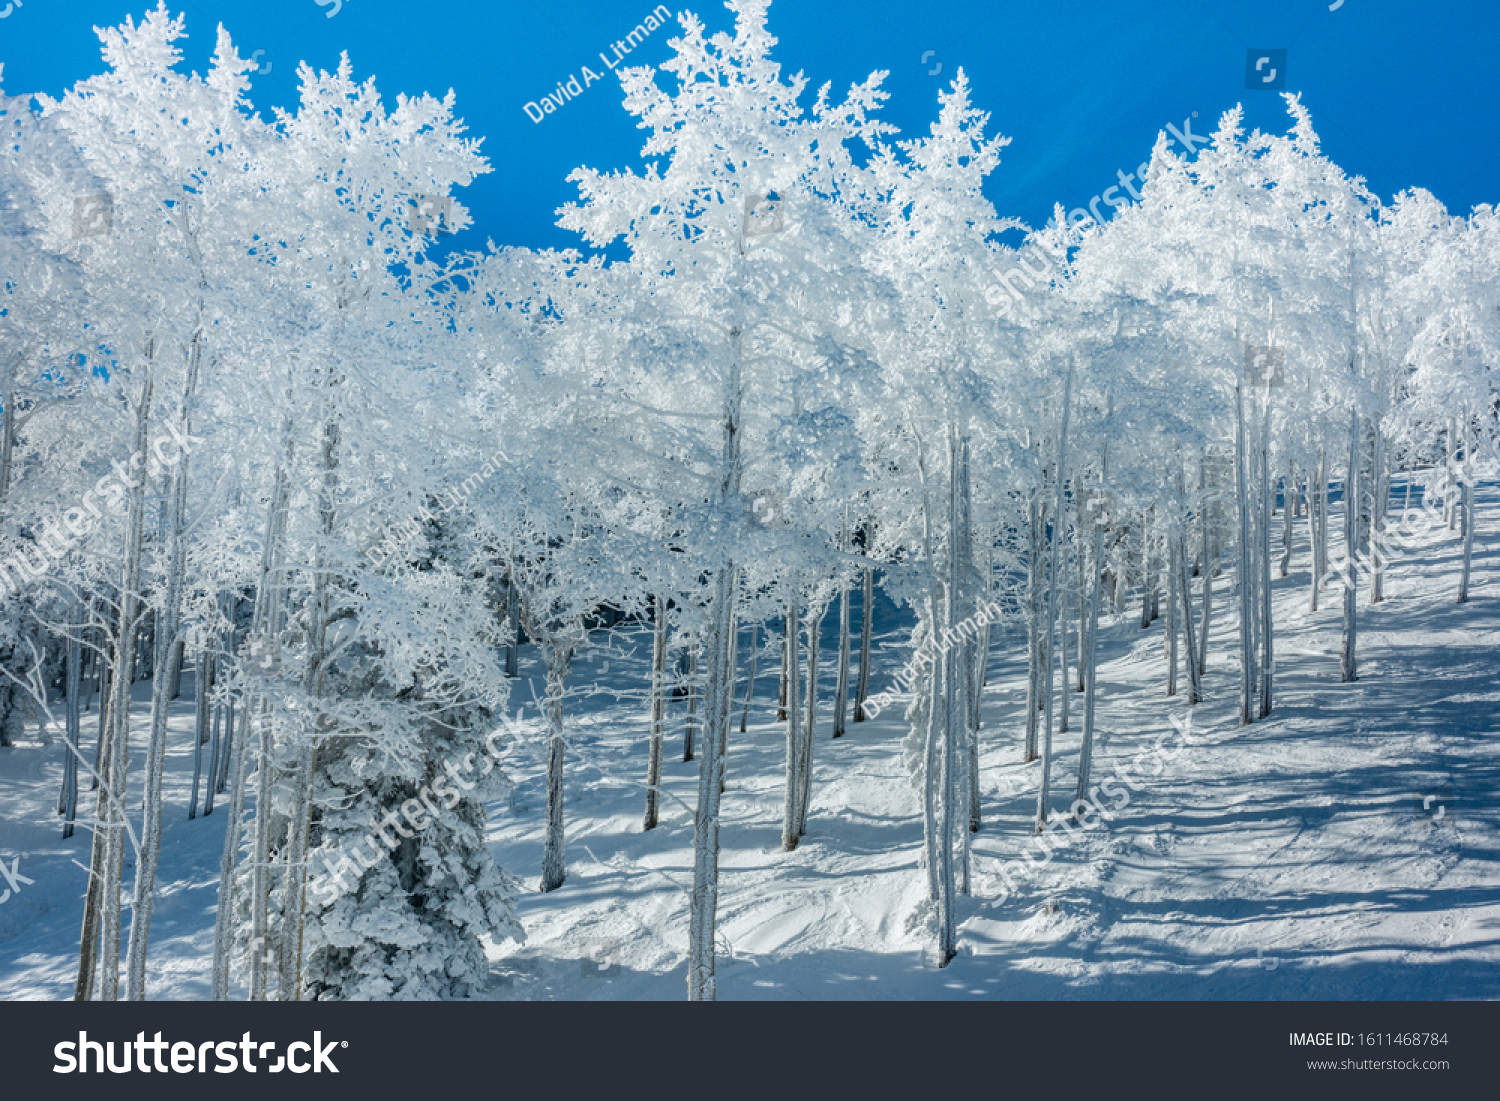 The ski slopes of Steamboat Springs ski resort, on Mount Werner in the Rocky Mountins of Colorado, are lined by frosty snow covered Aspen and Pine trees during a snowy winter season.